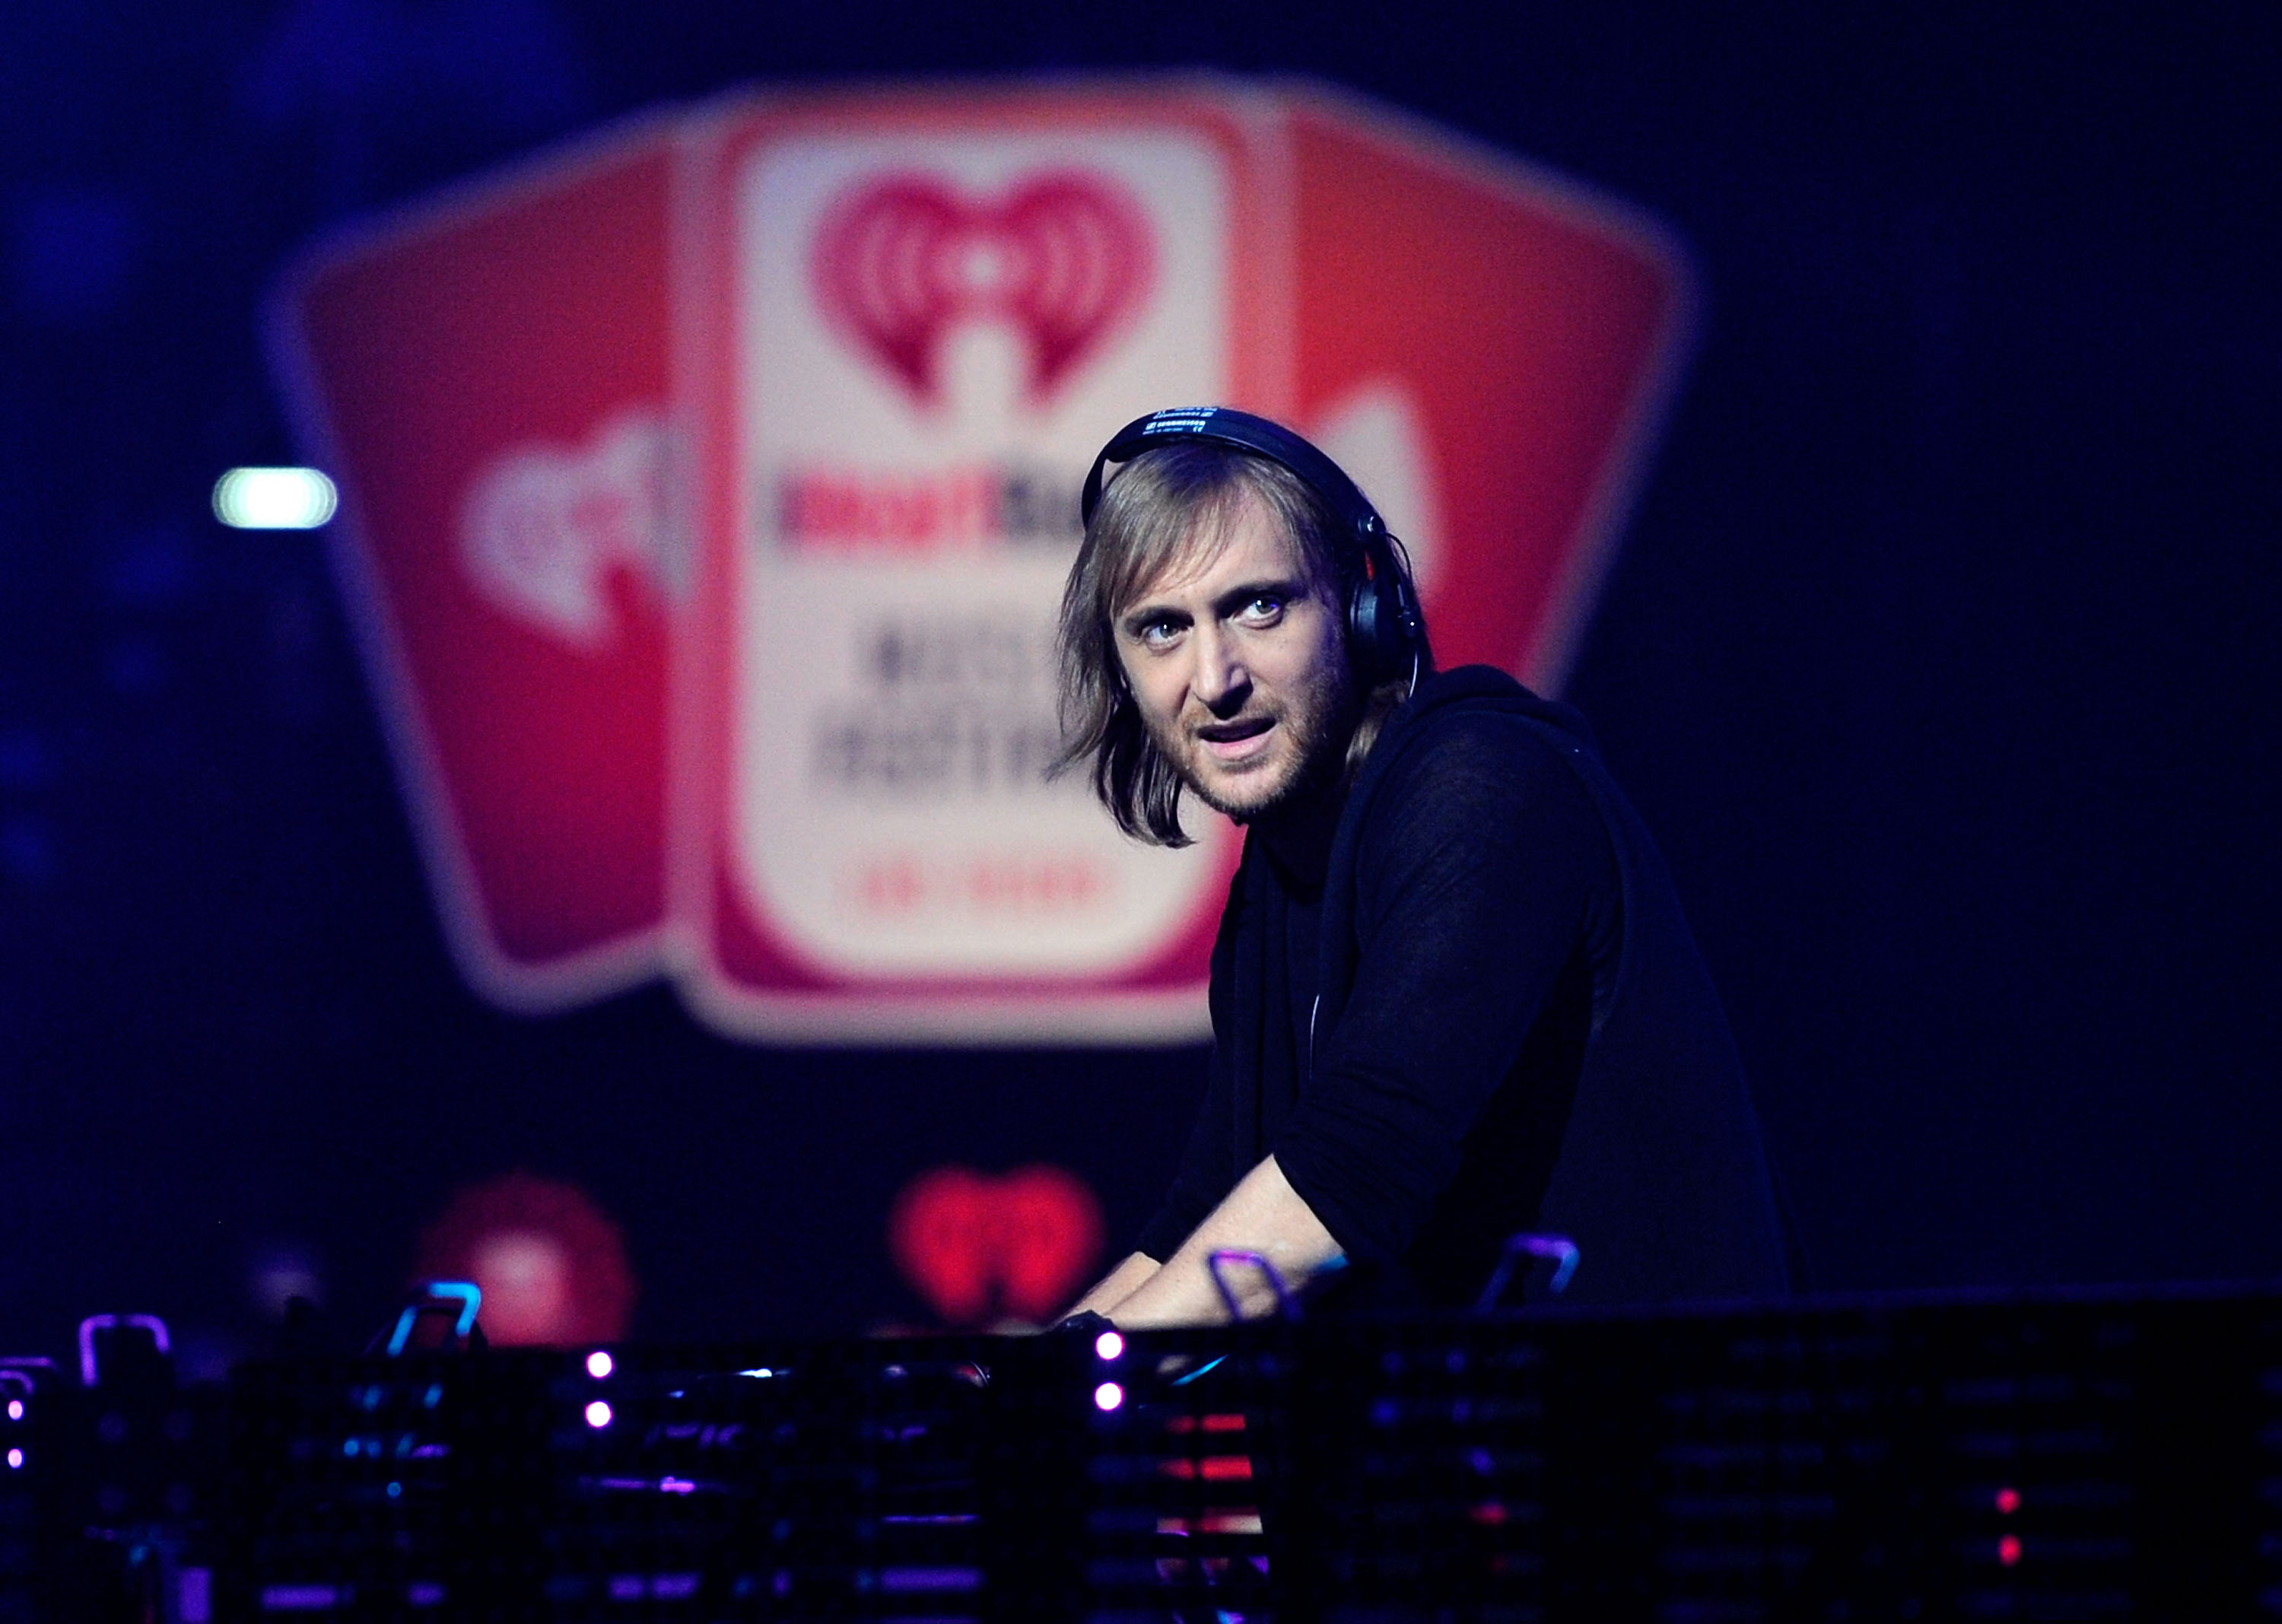 David Guetta is hosting an epic dance party on an iconic New York City rooftop this weekend